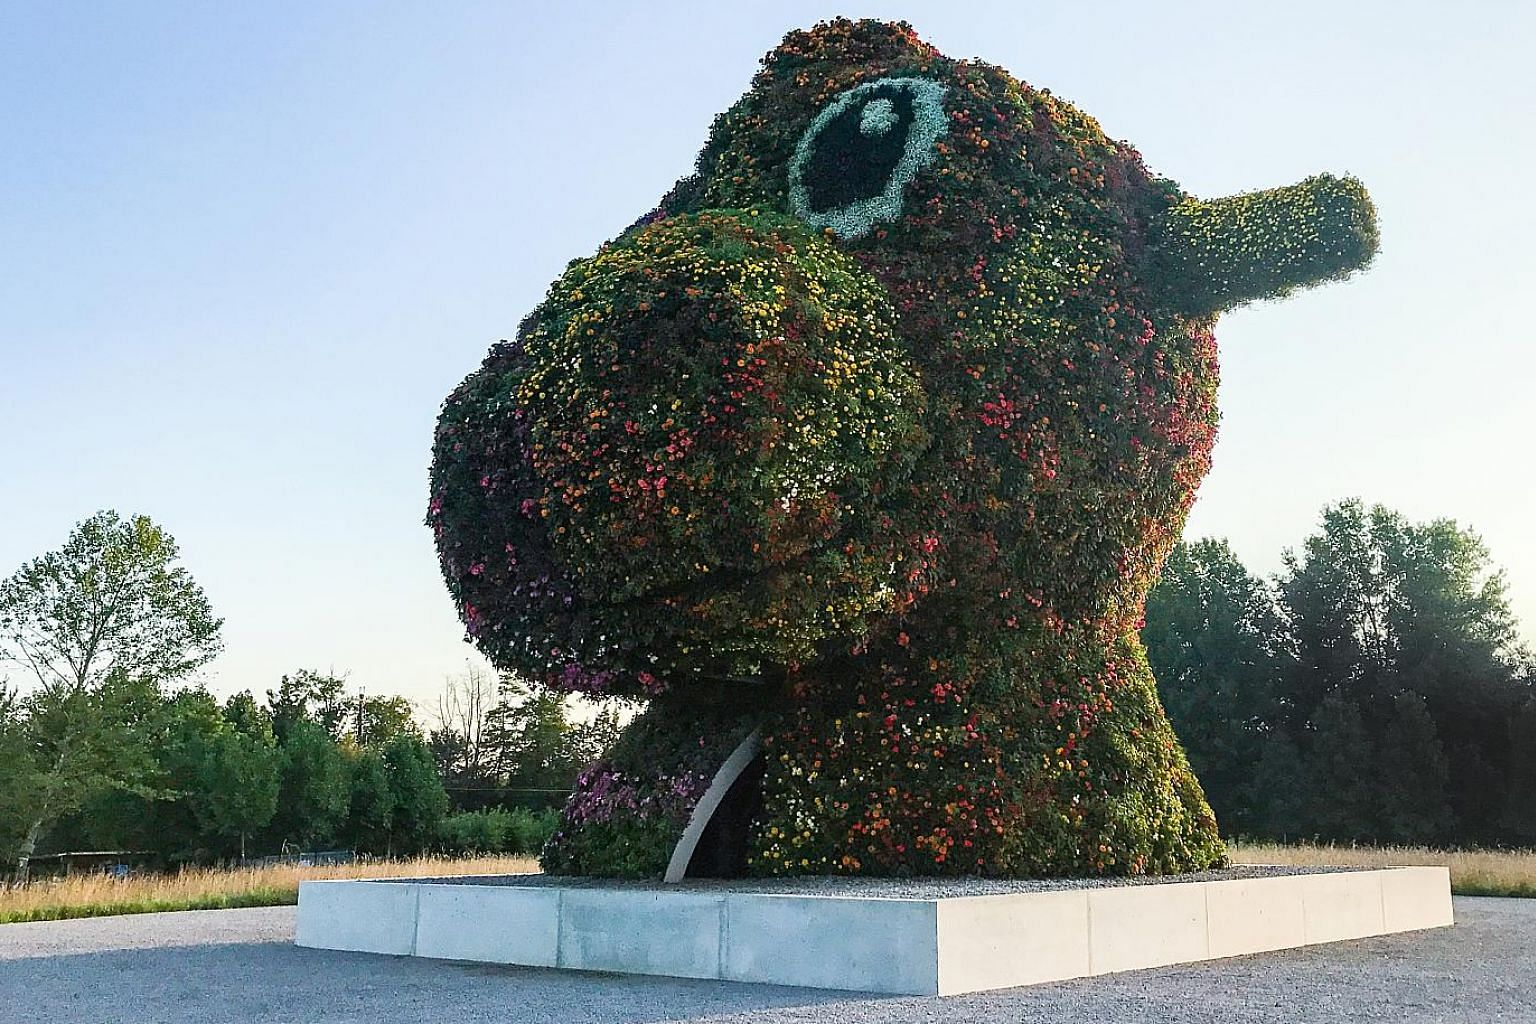 Split-Rocker at the Glenstone art museum in Potomac, Maryland, represents the heads of two child's rockers - one is of a toy pony, the other a dinosaur. Planting its upper section is done with the help of a cherry picker.